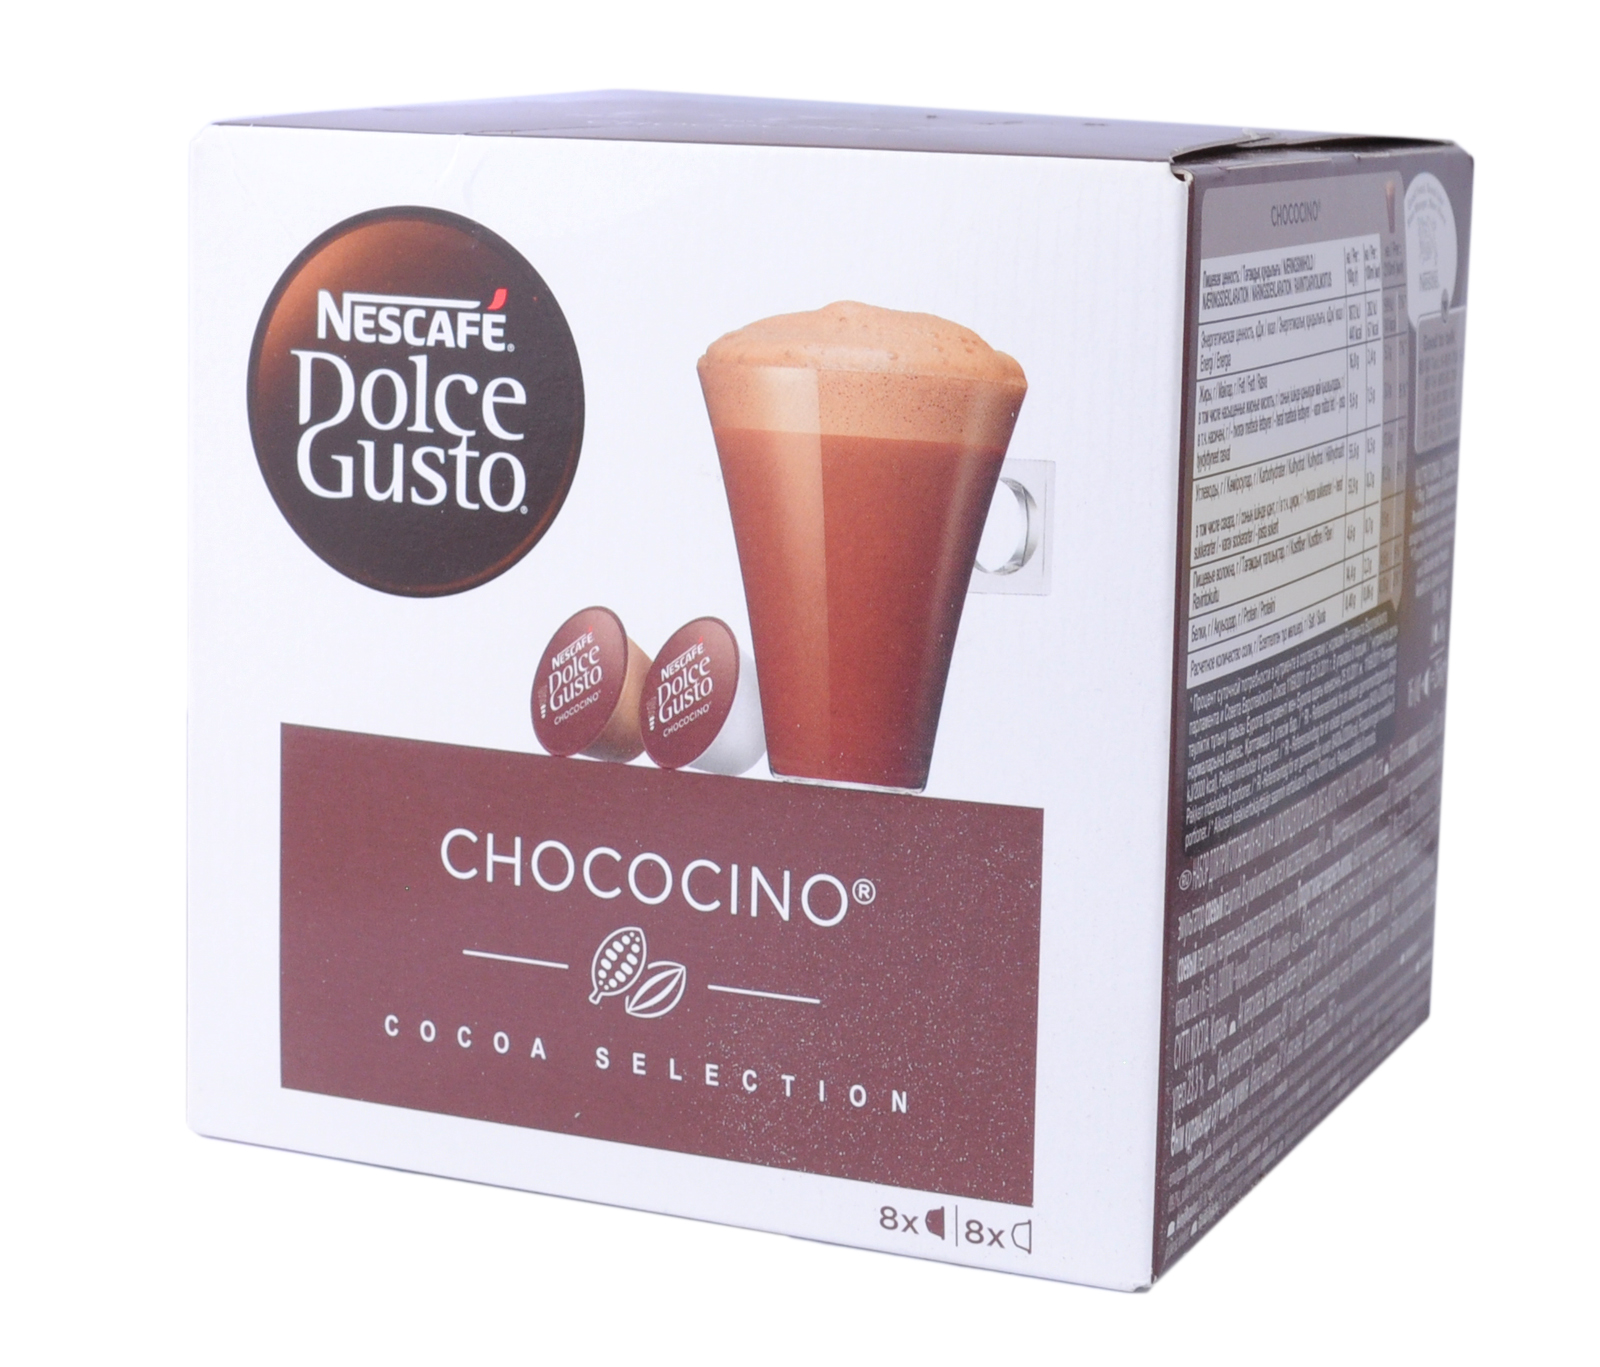 Nescafe Dolce Gusto Chocoino 256g Capsules Filters